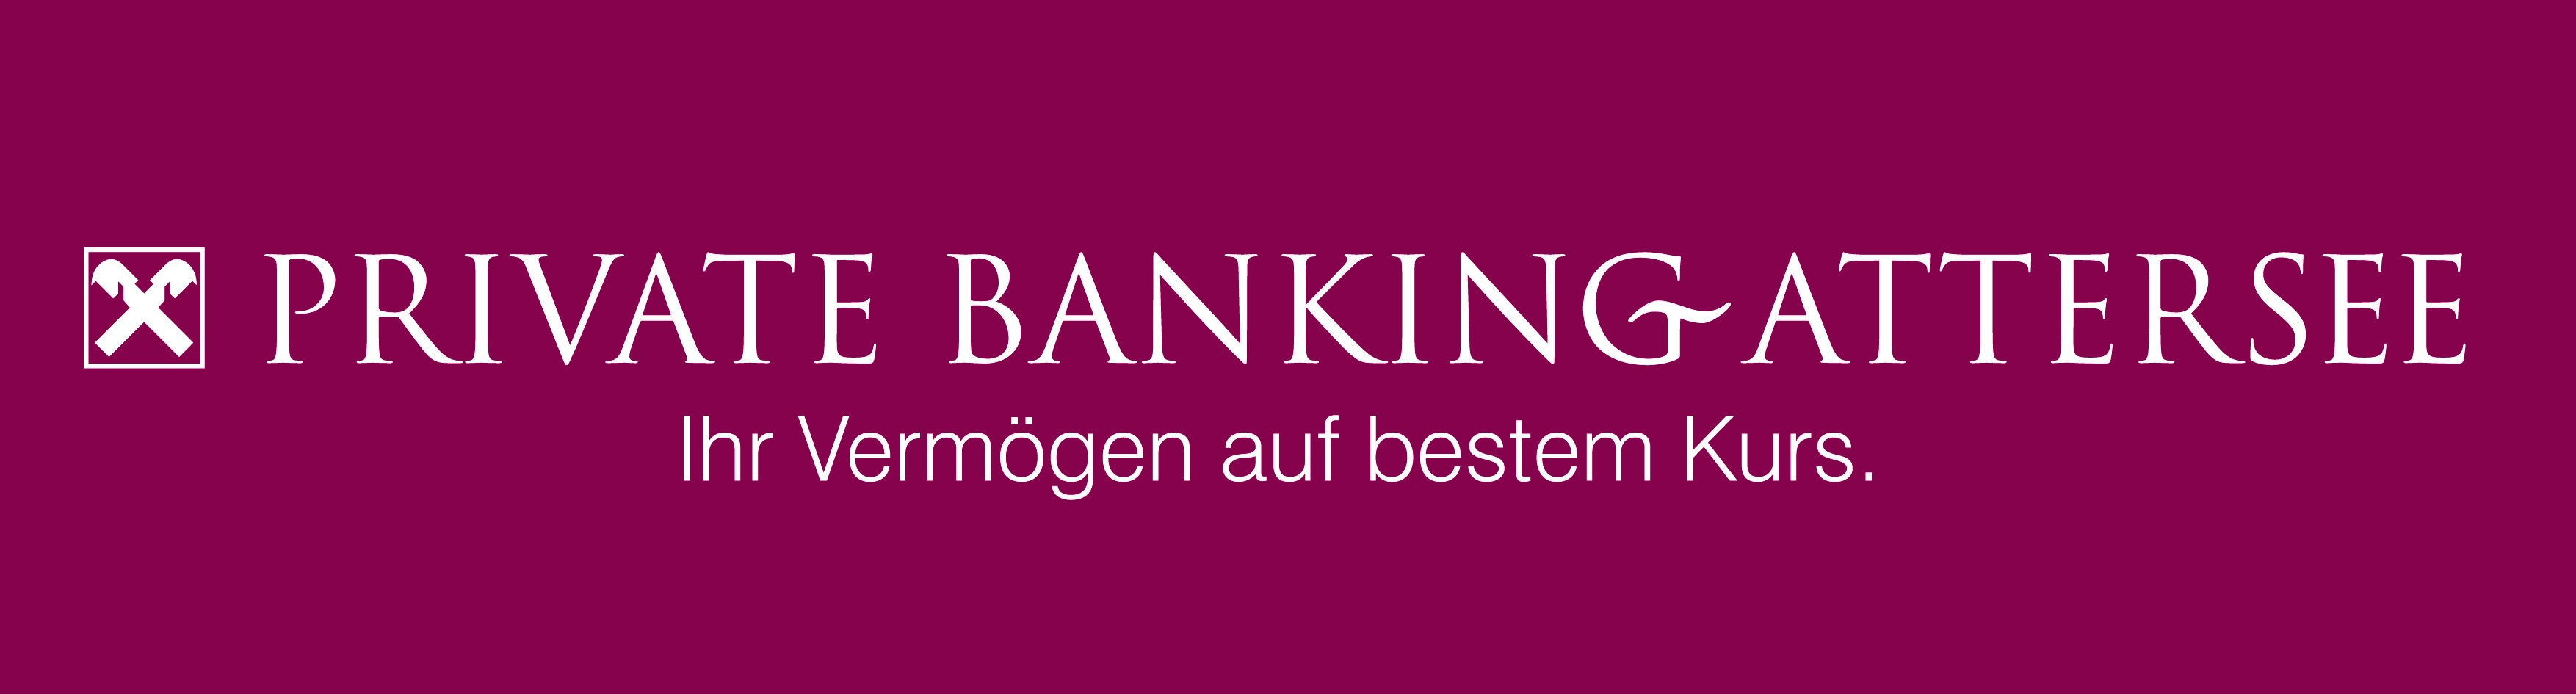 Private Banking Attersee